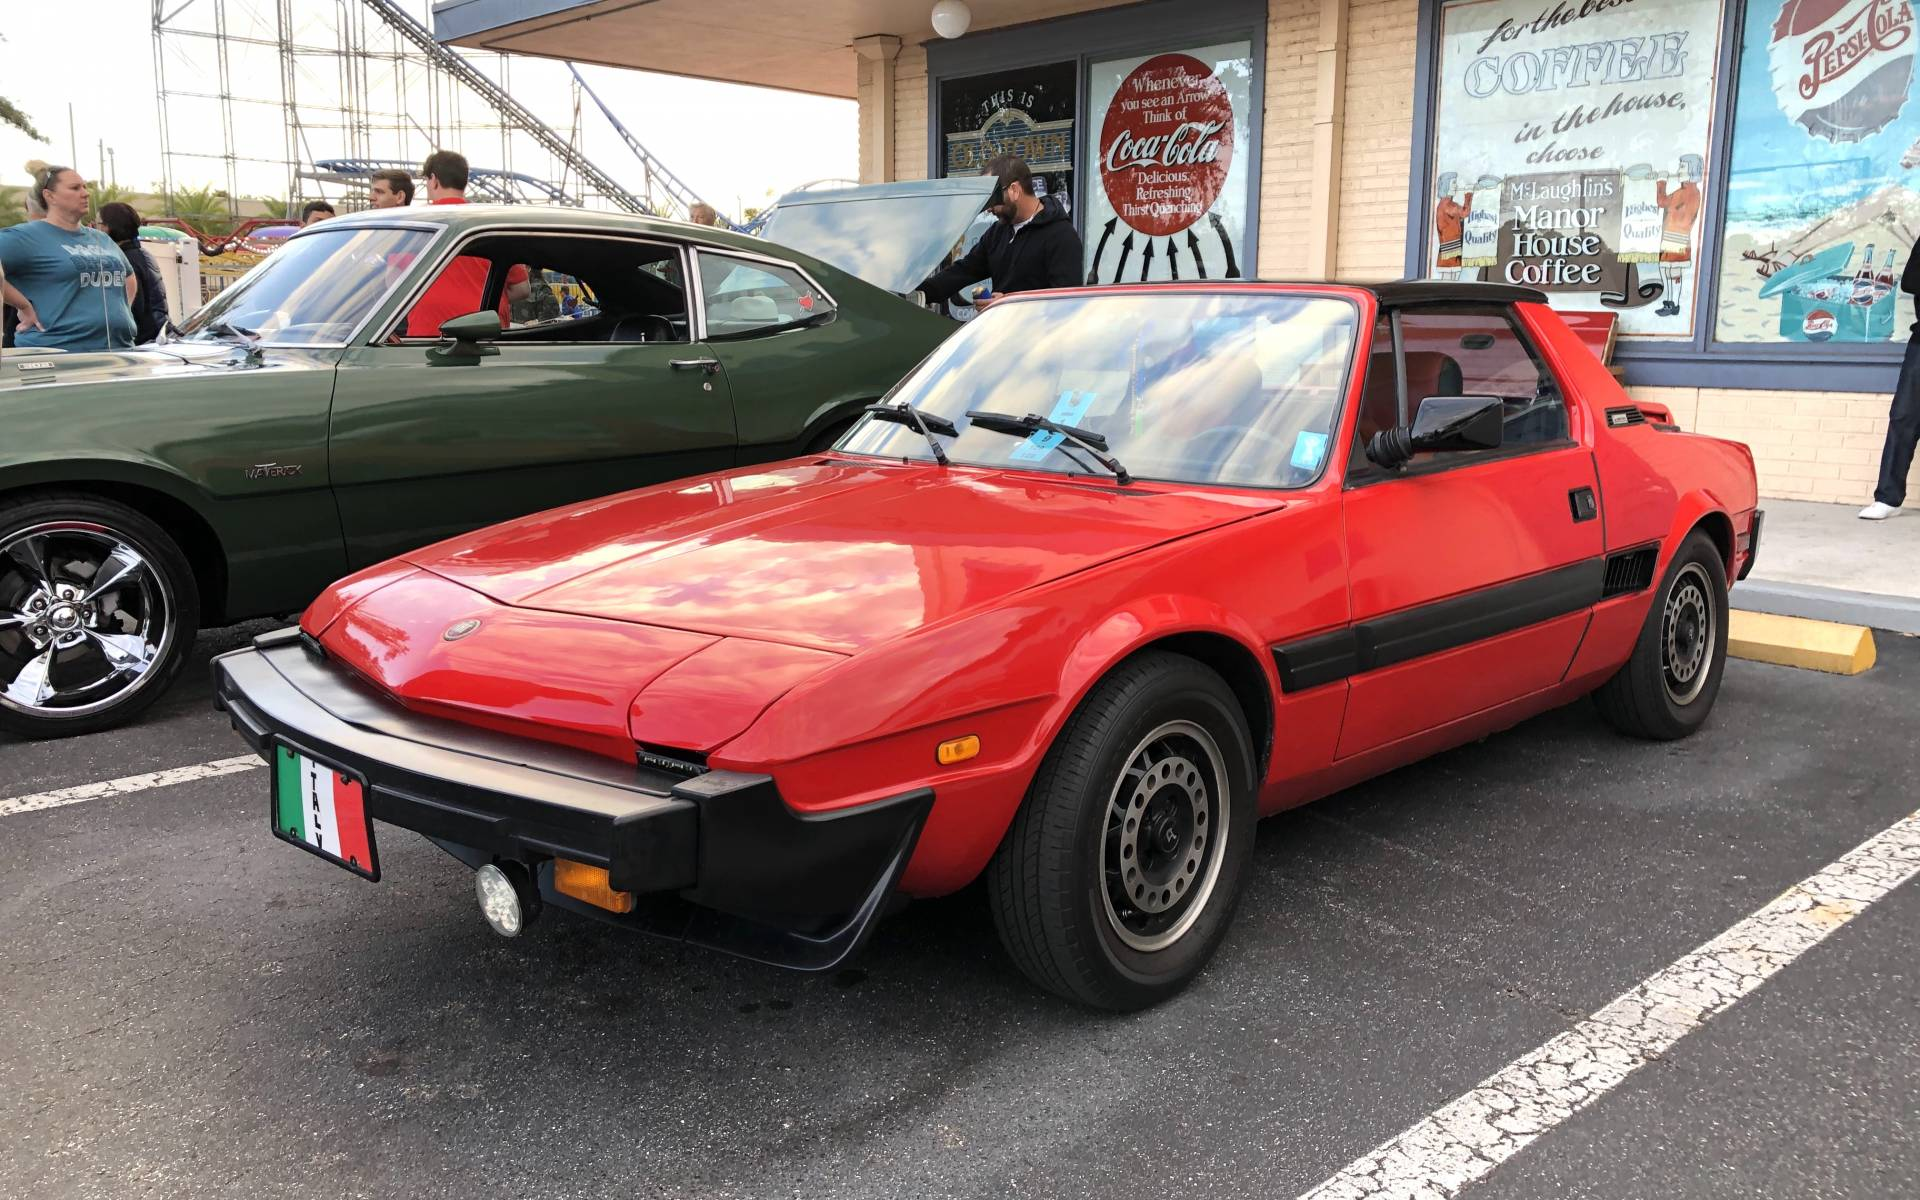 <p><strong>Fiat X1/9</strong></p>